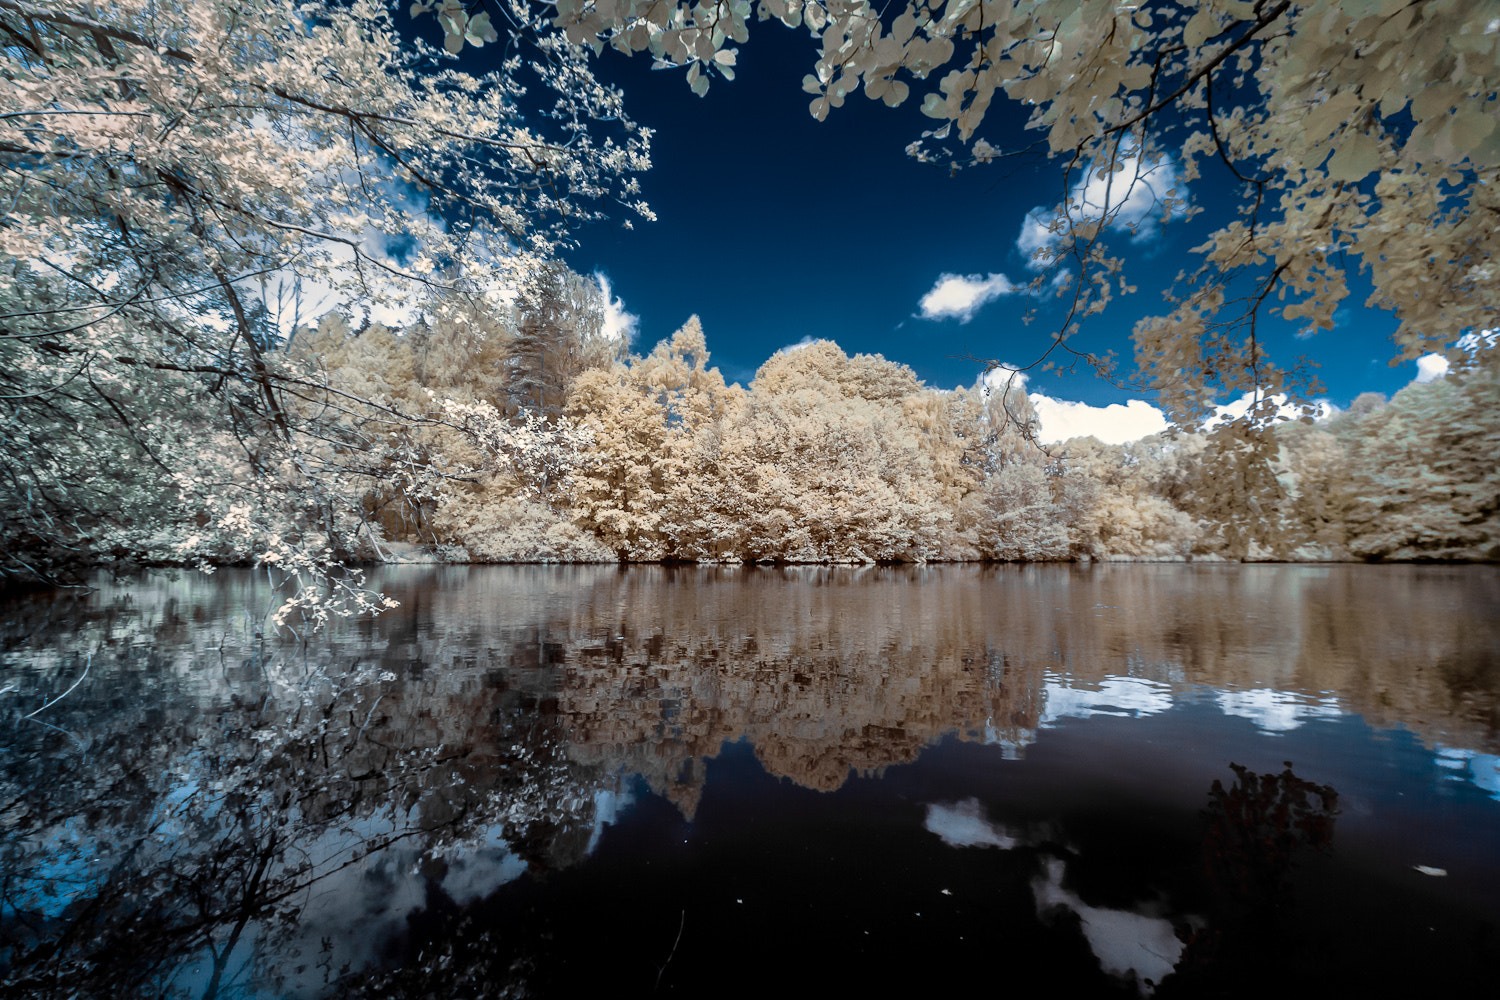 Photograph View to another world by Thorsten Scheel on 500px